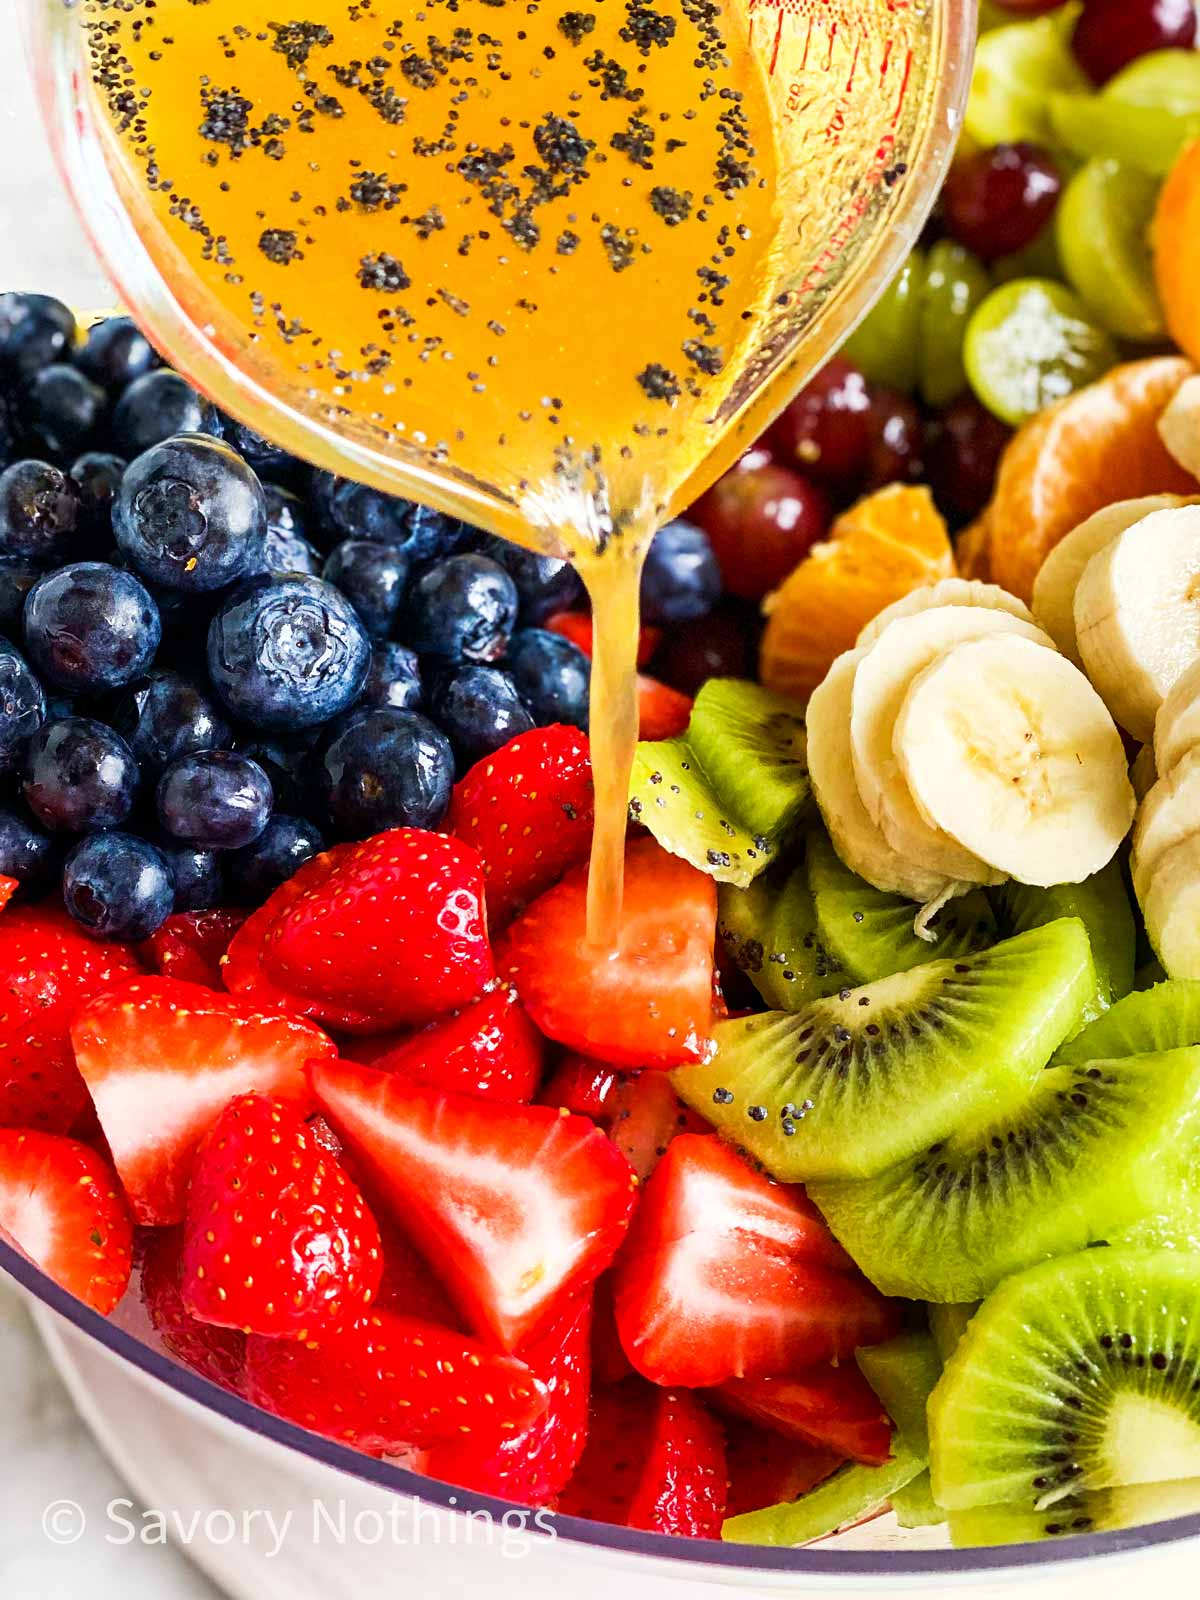 poppy seed fruit salad dressing pouring over freshly cut fruit from small glass measuring jug